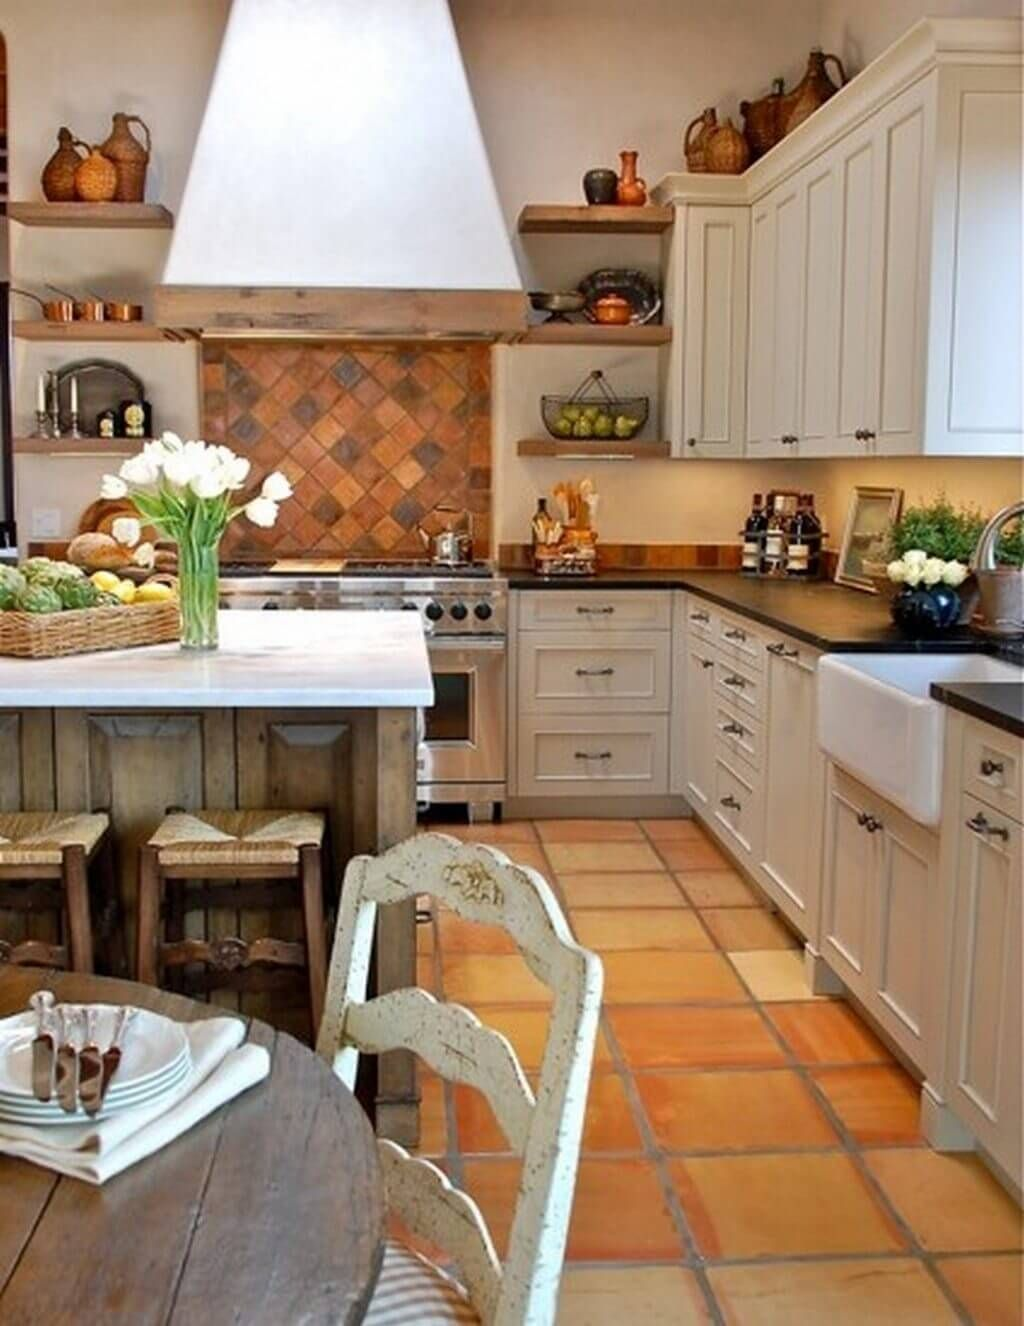 31 Modern And Traditional Spanish Style Kitchen Designs Kitchen Flooring Spanish Style Kitchen Kitchen Remodel Small